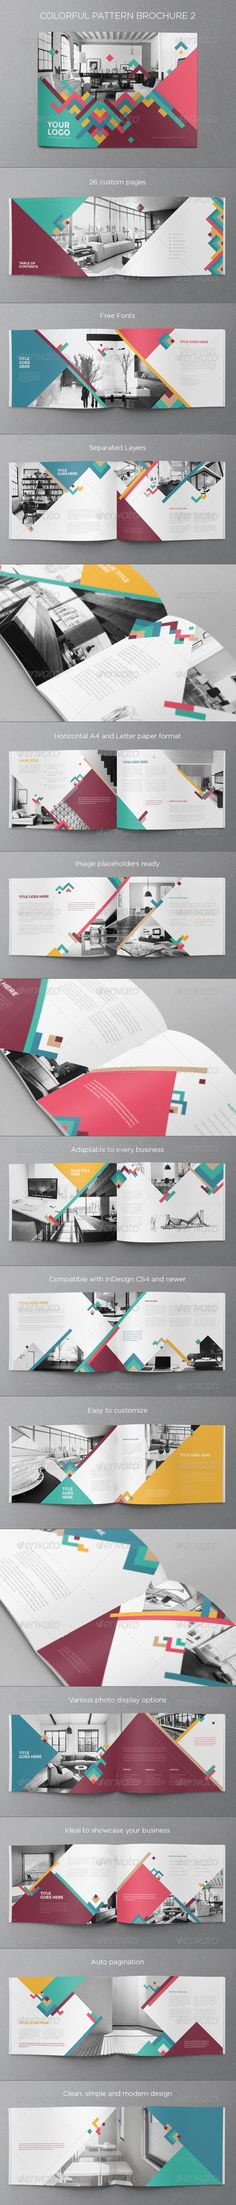 Colorful Pattern Brochure 2 - Brochures Print Templates